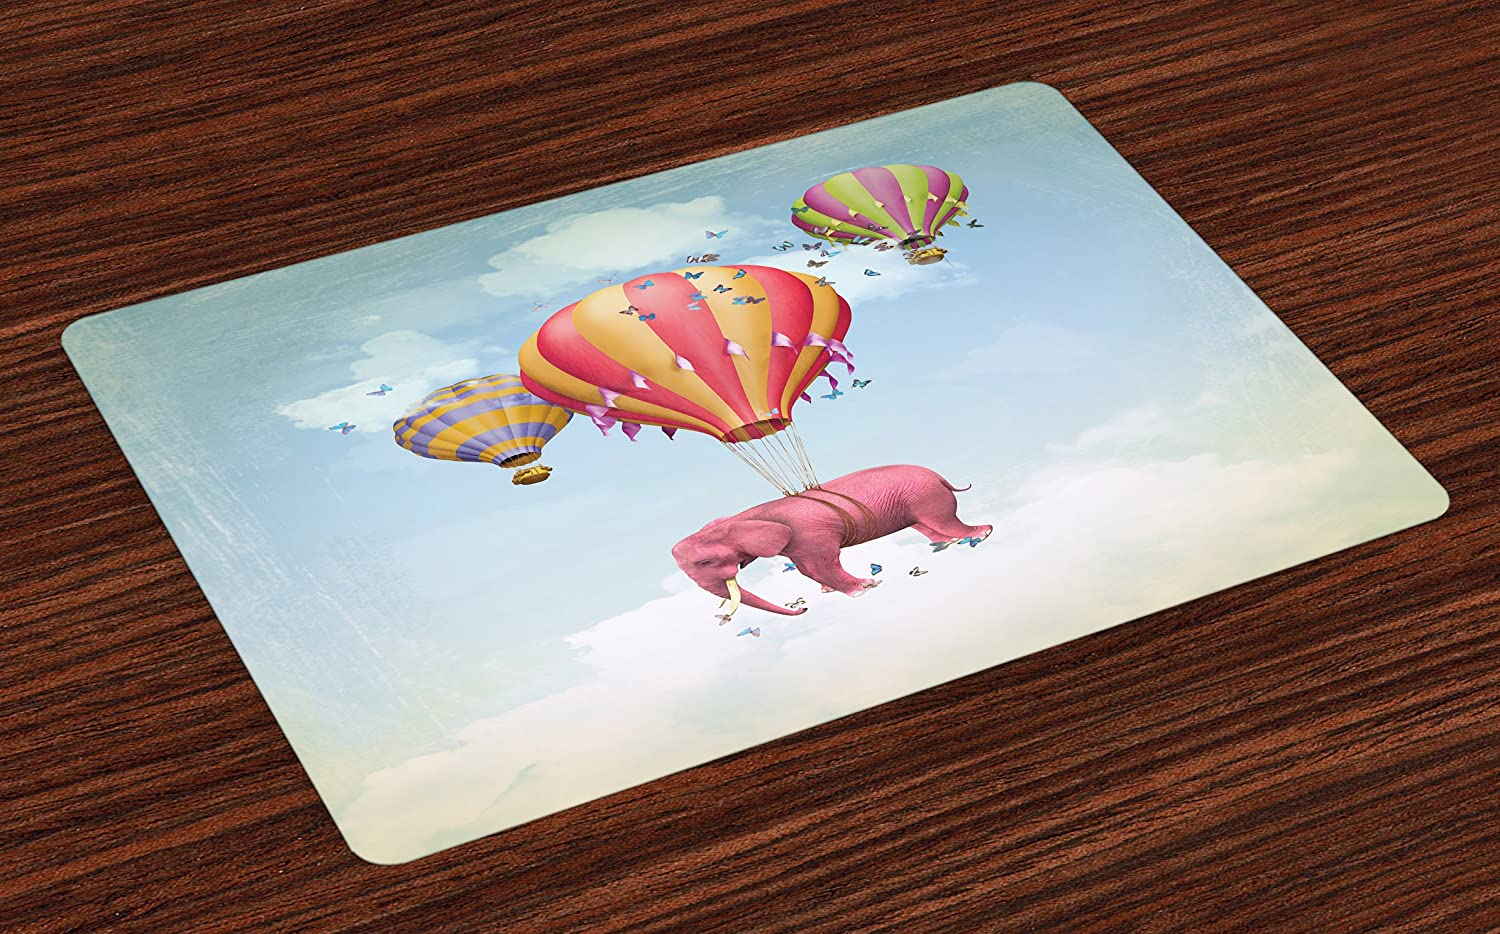 Ambesonne Elephant Place Mats Set of 4, Pink Elephant in The Sky with Balloons Illustration Daydream Fairytale Travel, Washable Fabric Placemats for Dining Room Kitchen Table Decor, Multicolor